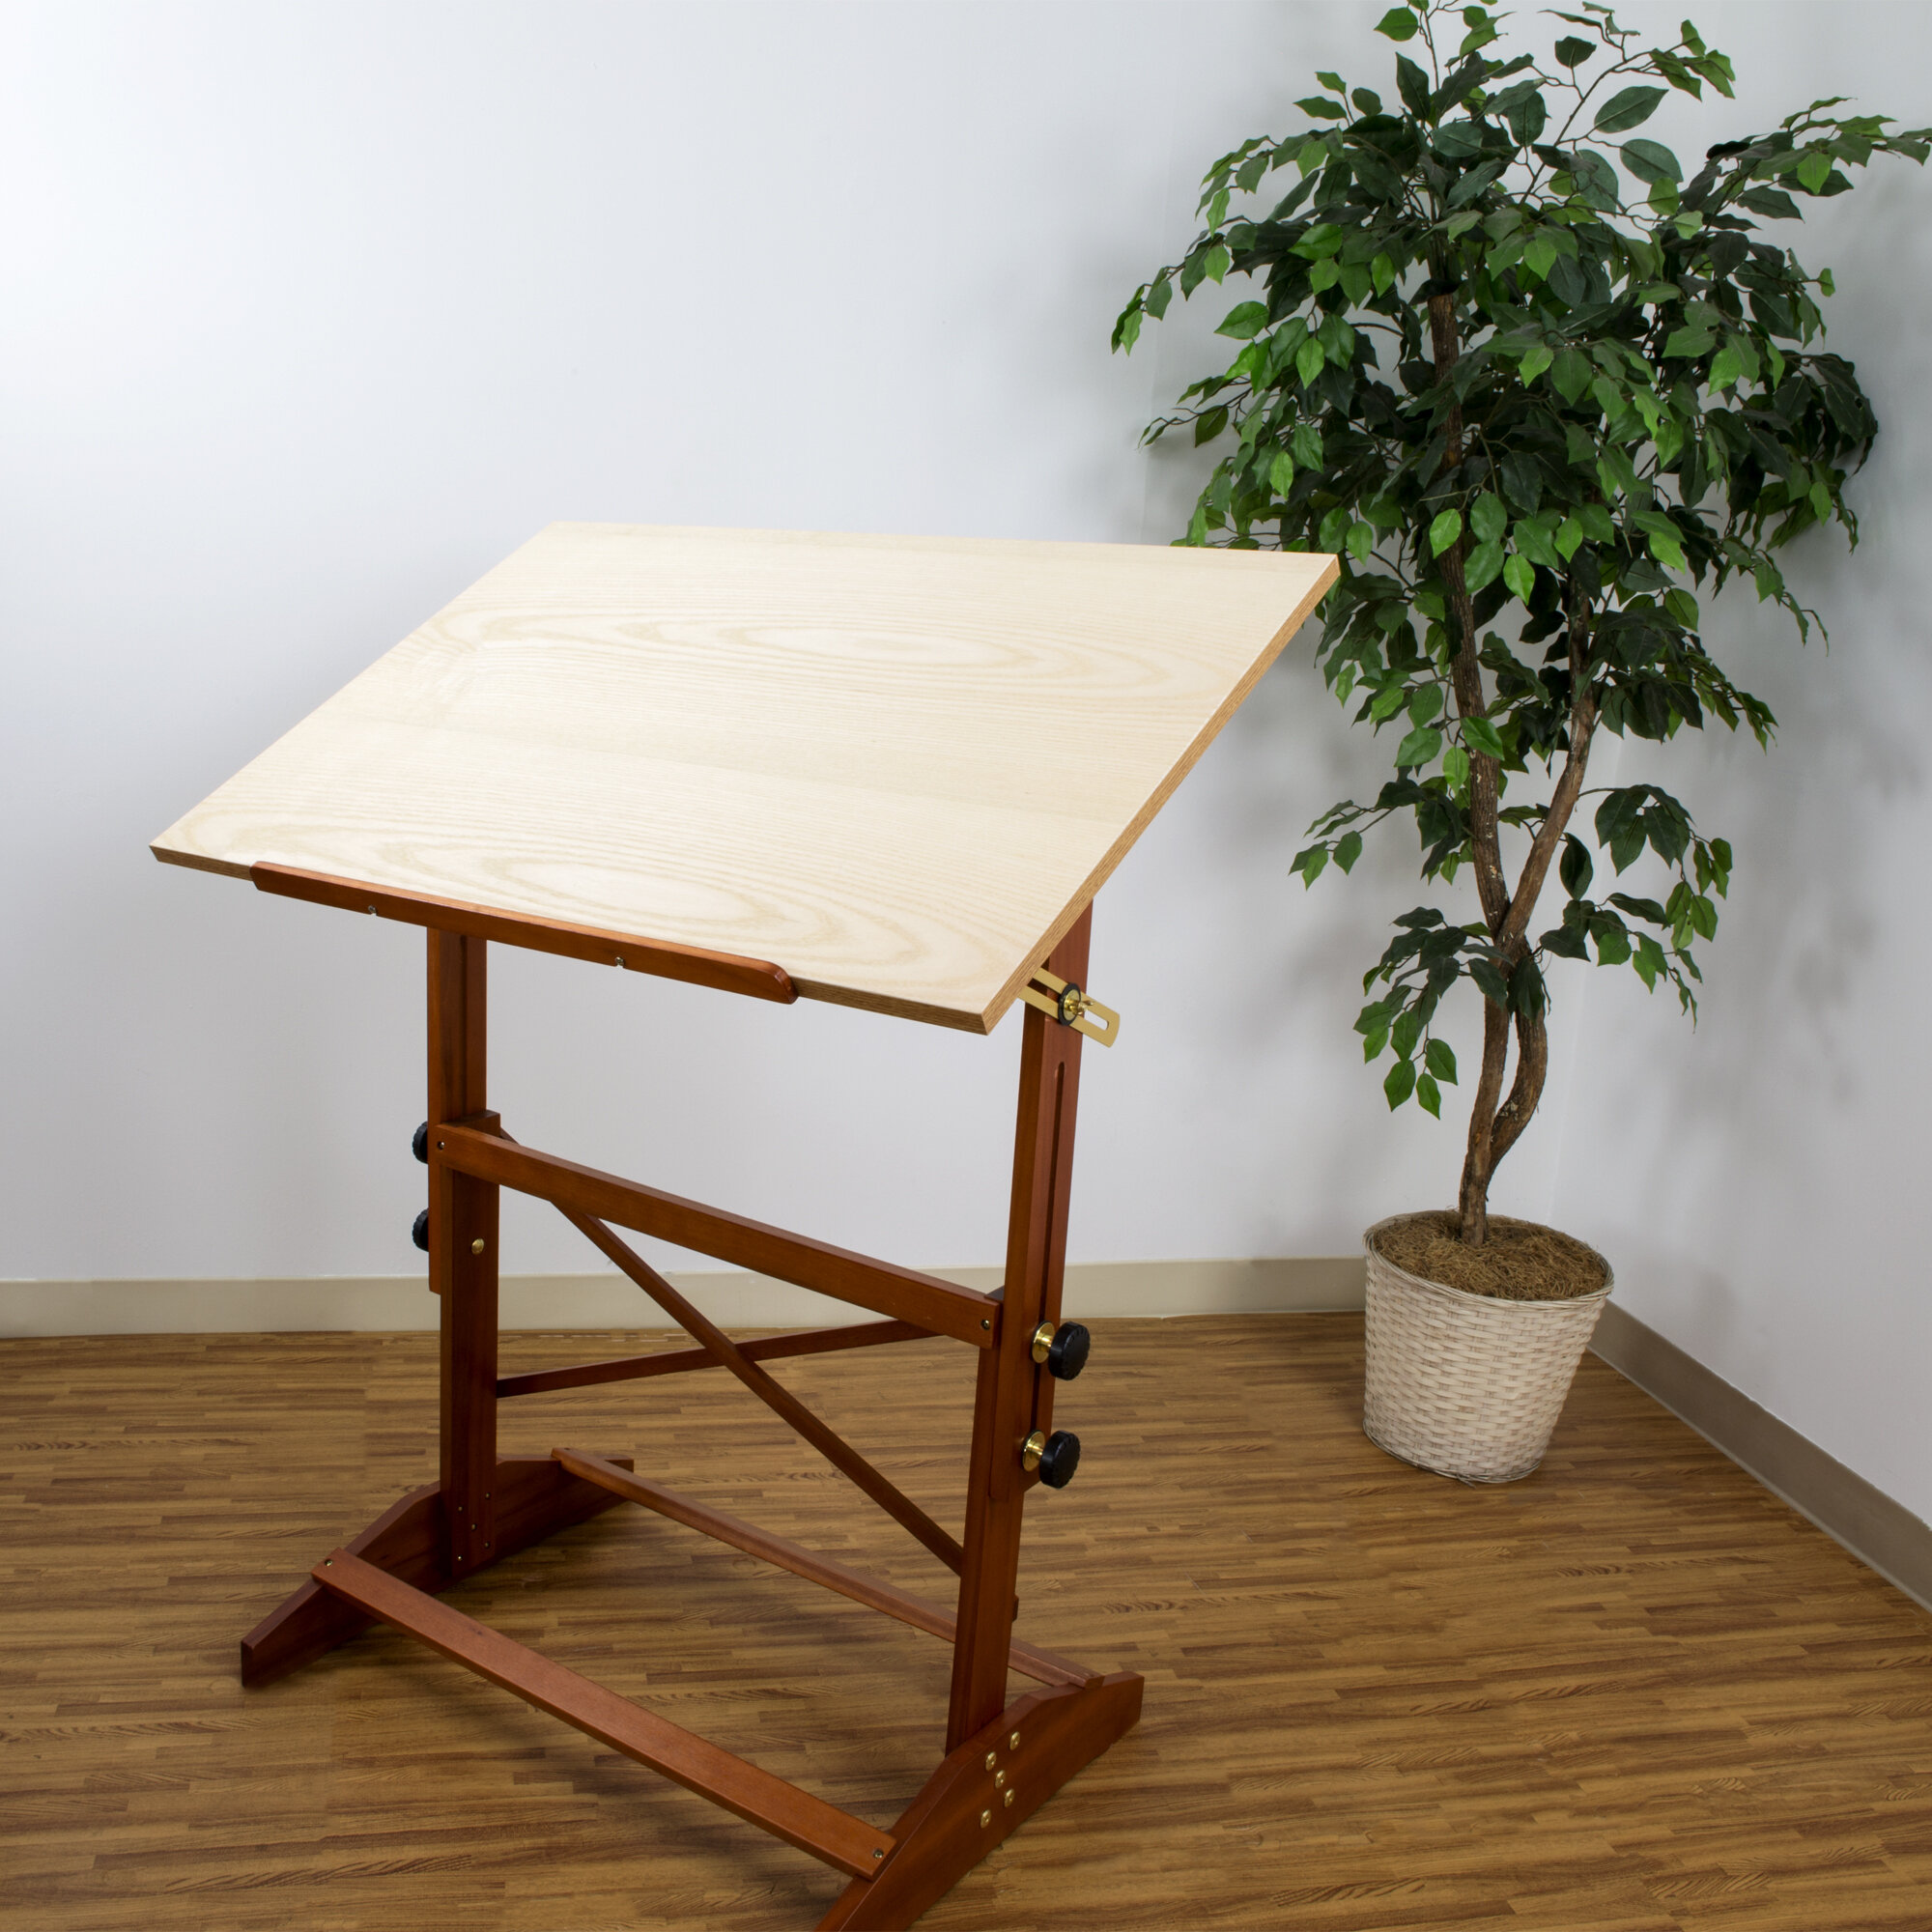 vanguard wood drafting desk hopper onsingularity alvin tables furniture s used x table com